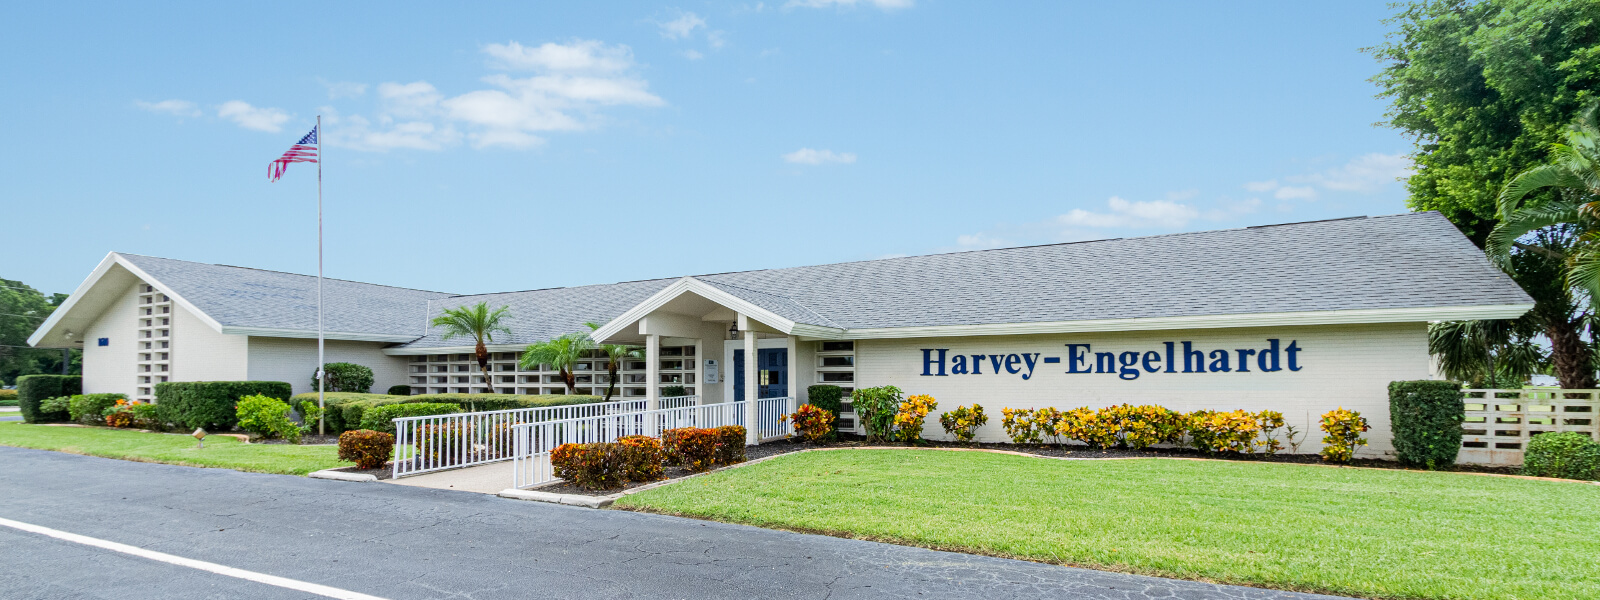 Harvey-Engelhardt Funeral & Cremation Services in Fort Myers FL